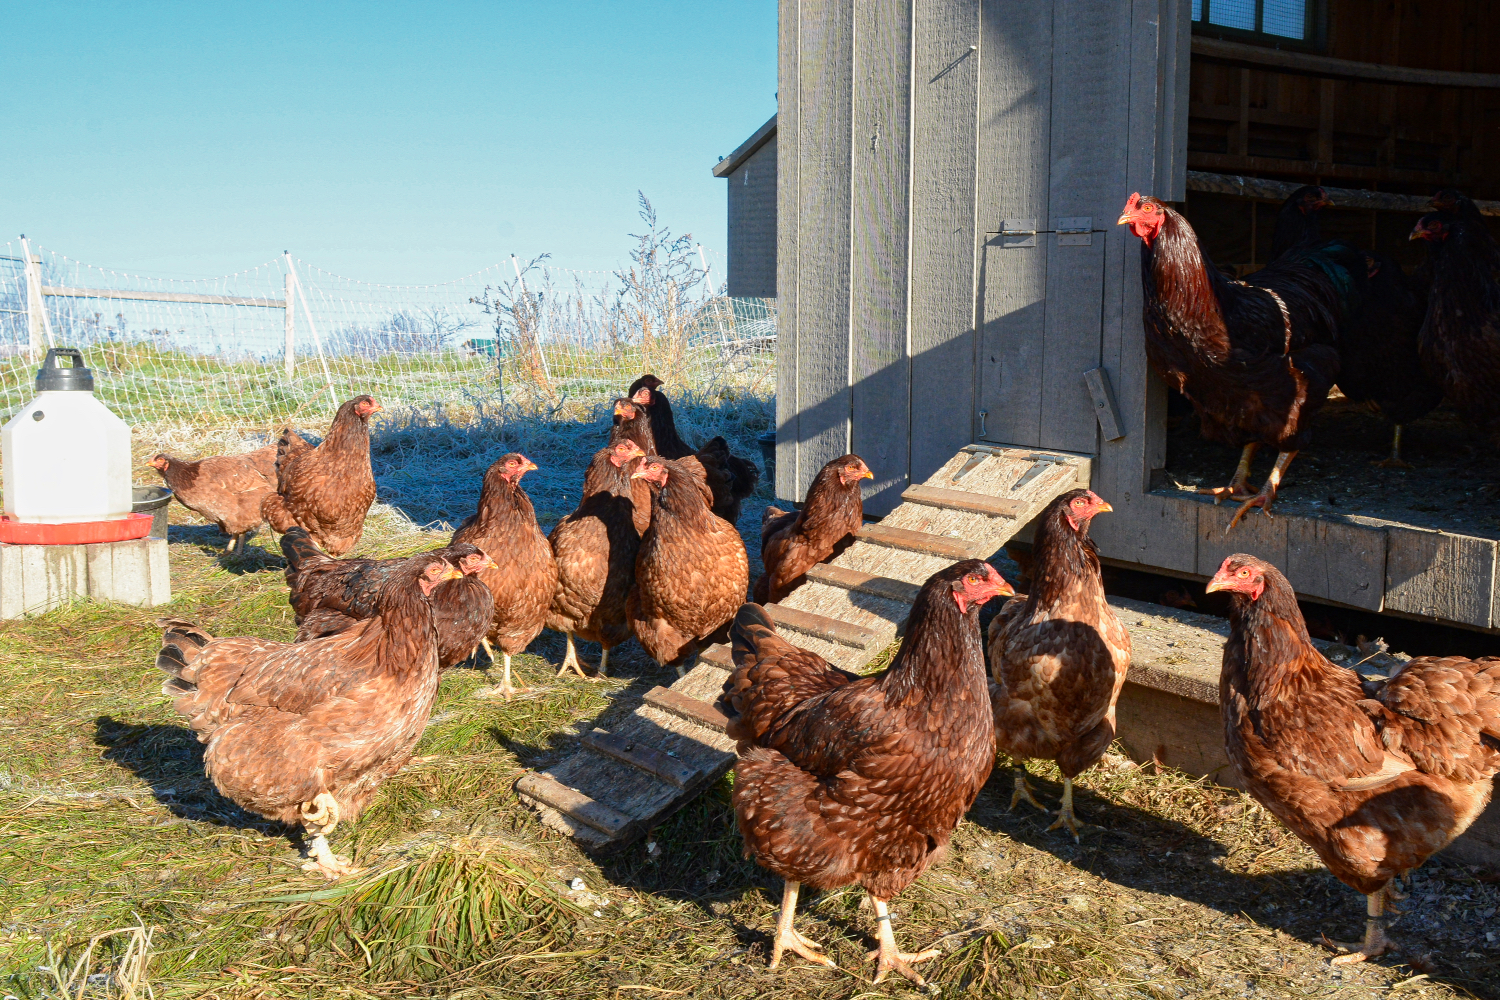 Rooster & hens in mobile house